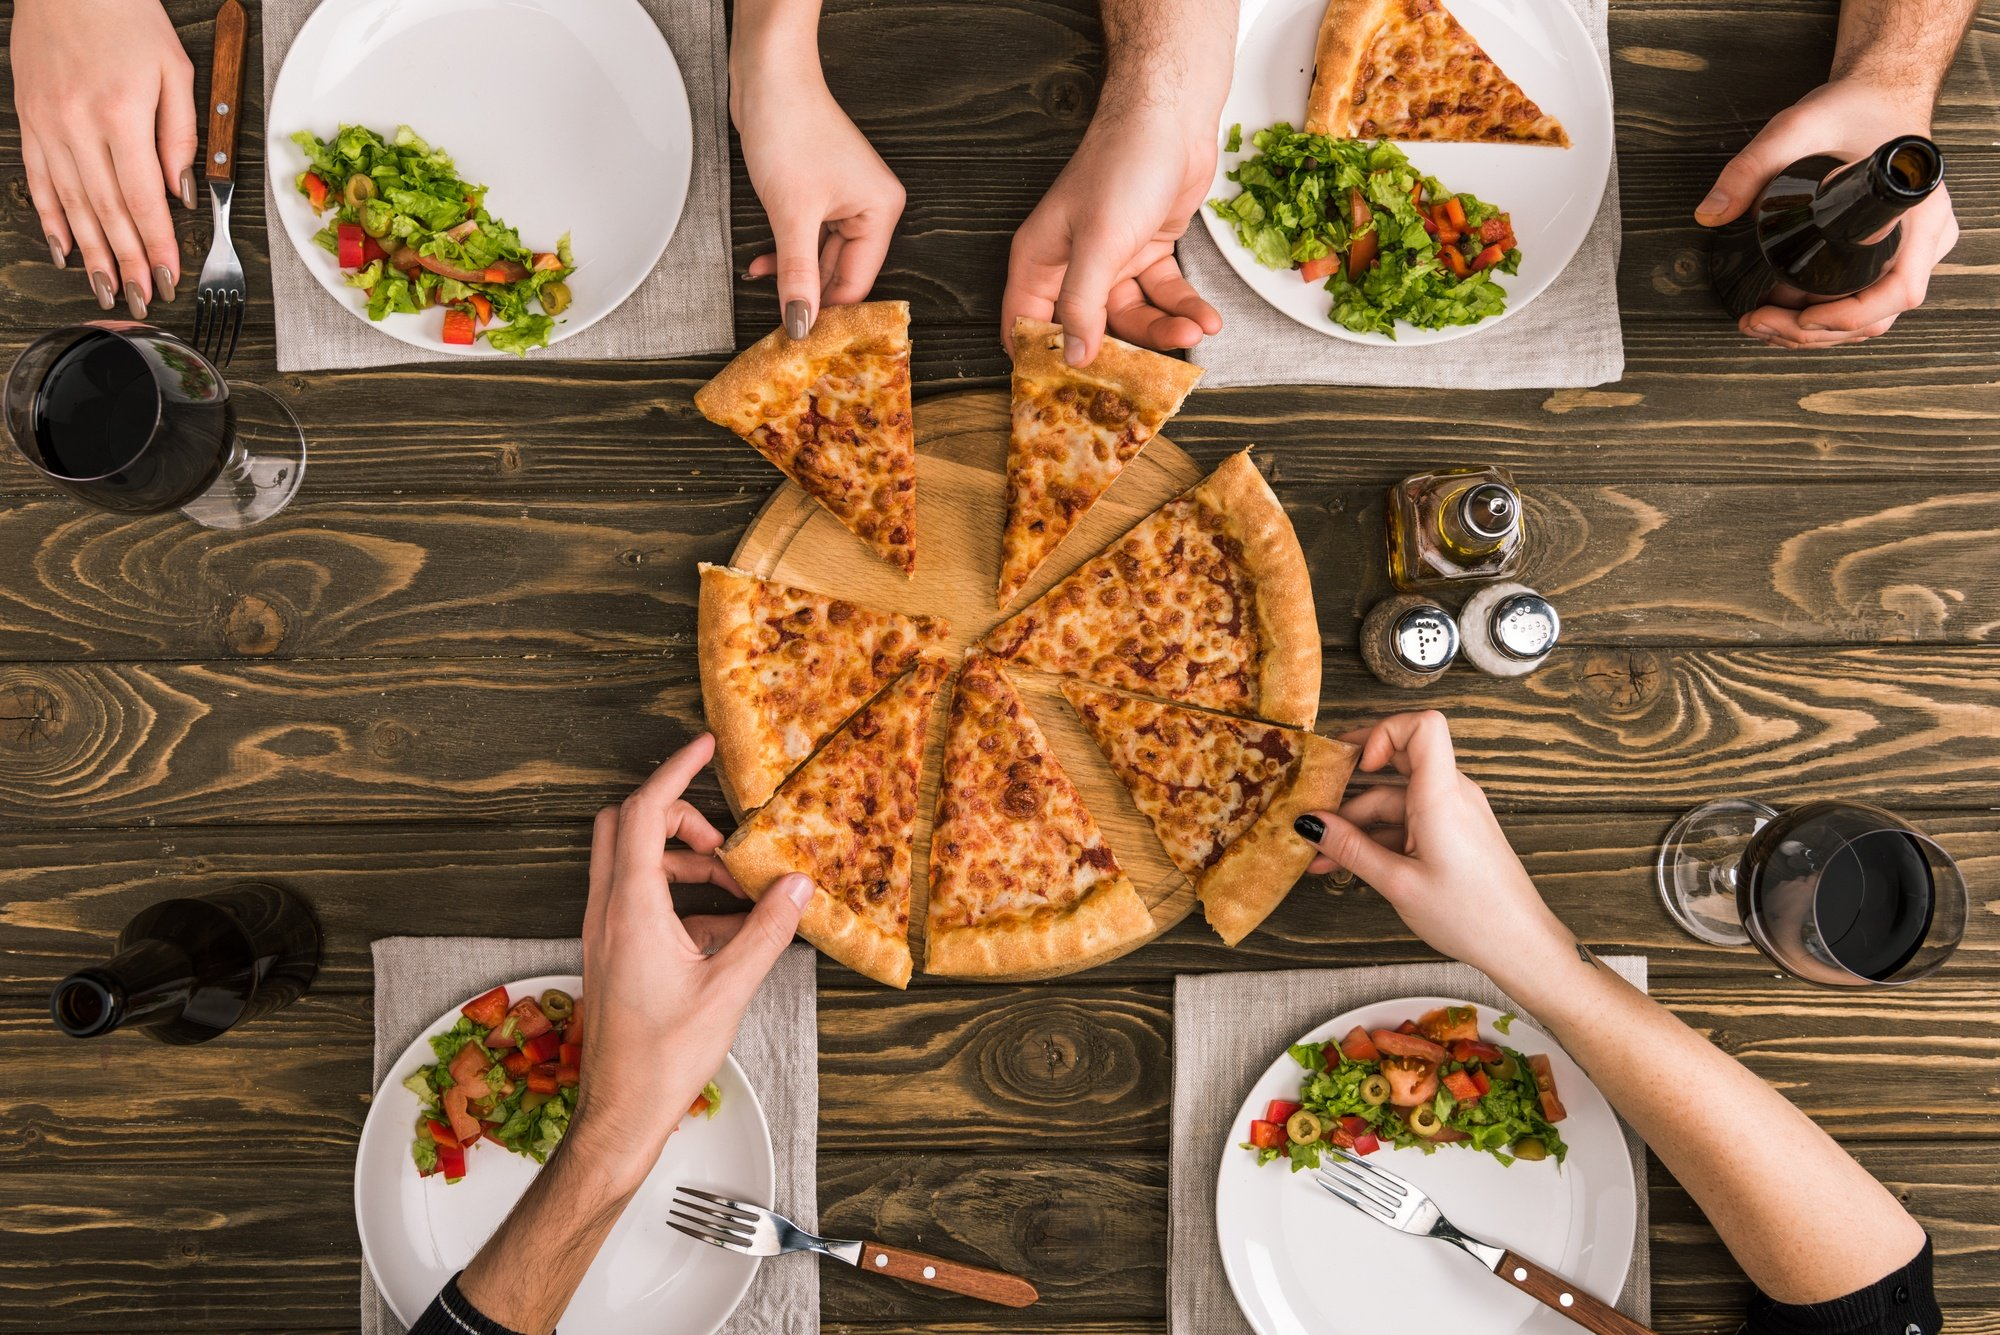 Pizza is a meal the whole family will enjoy for your destination family reunion